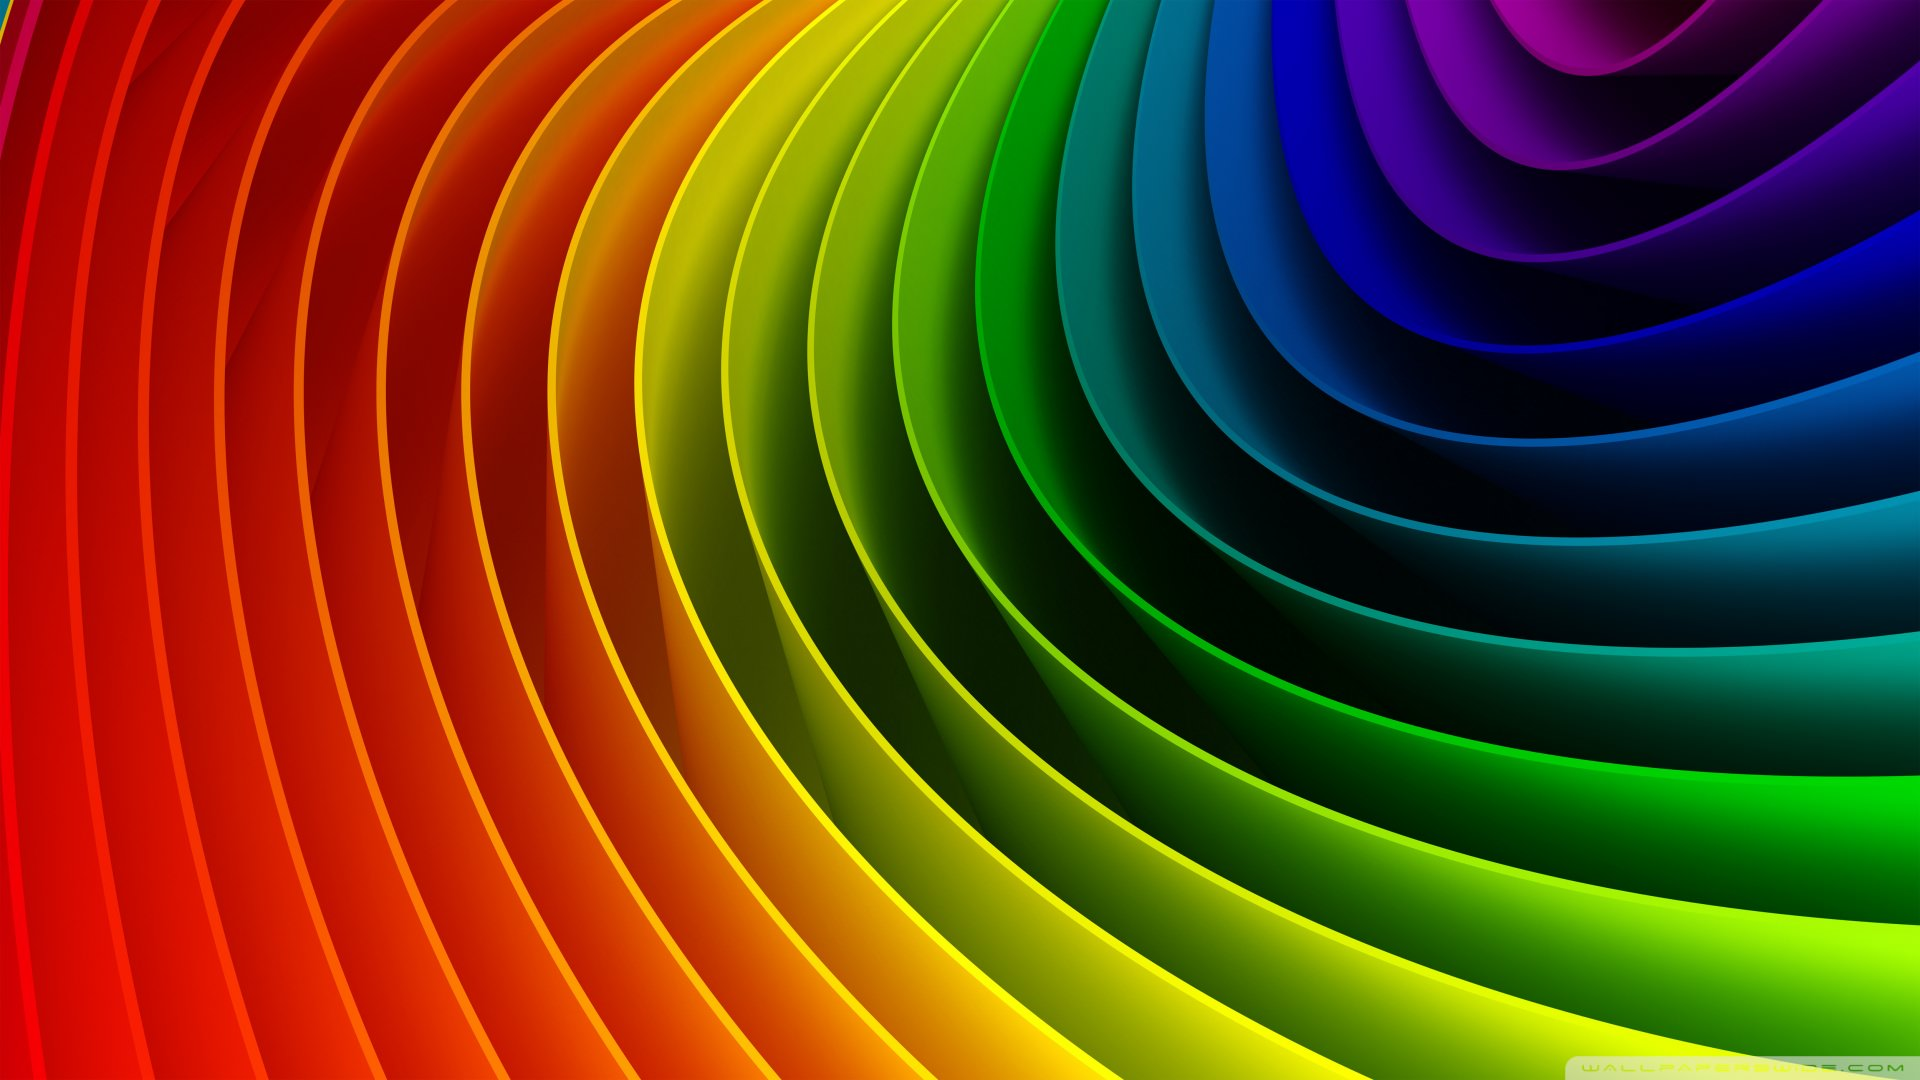 3d Flower Wallpapers For Iphone 20 Hd Rainbow Background Images And Wallpapers Free